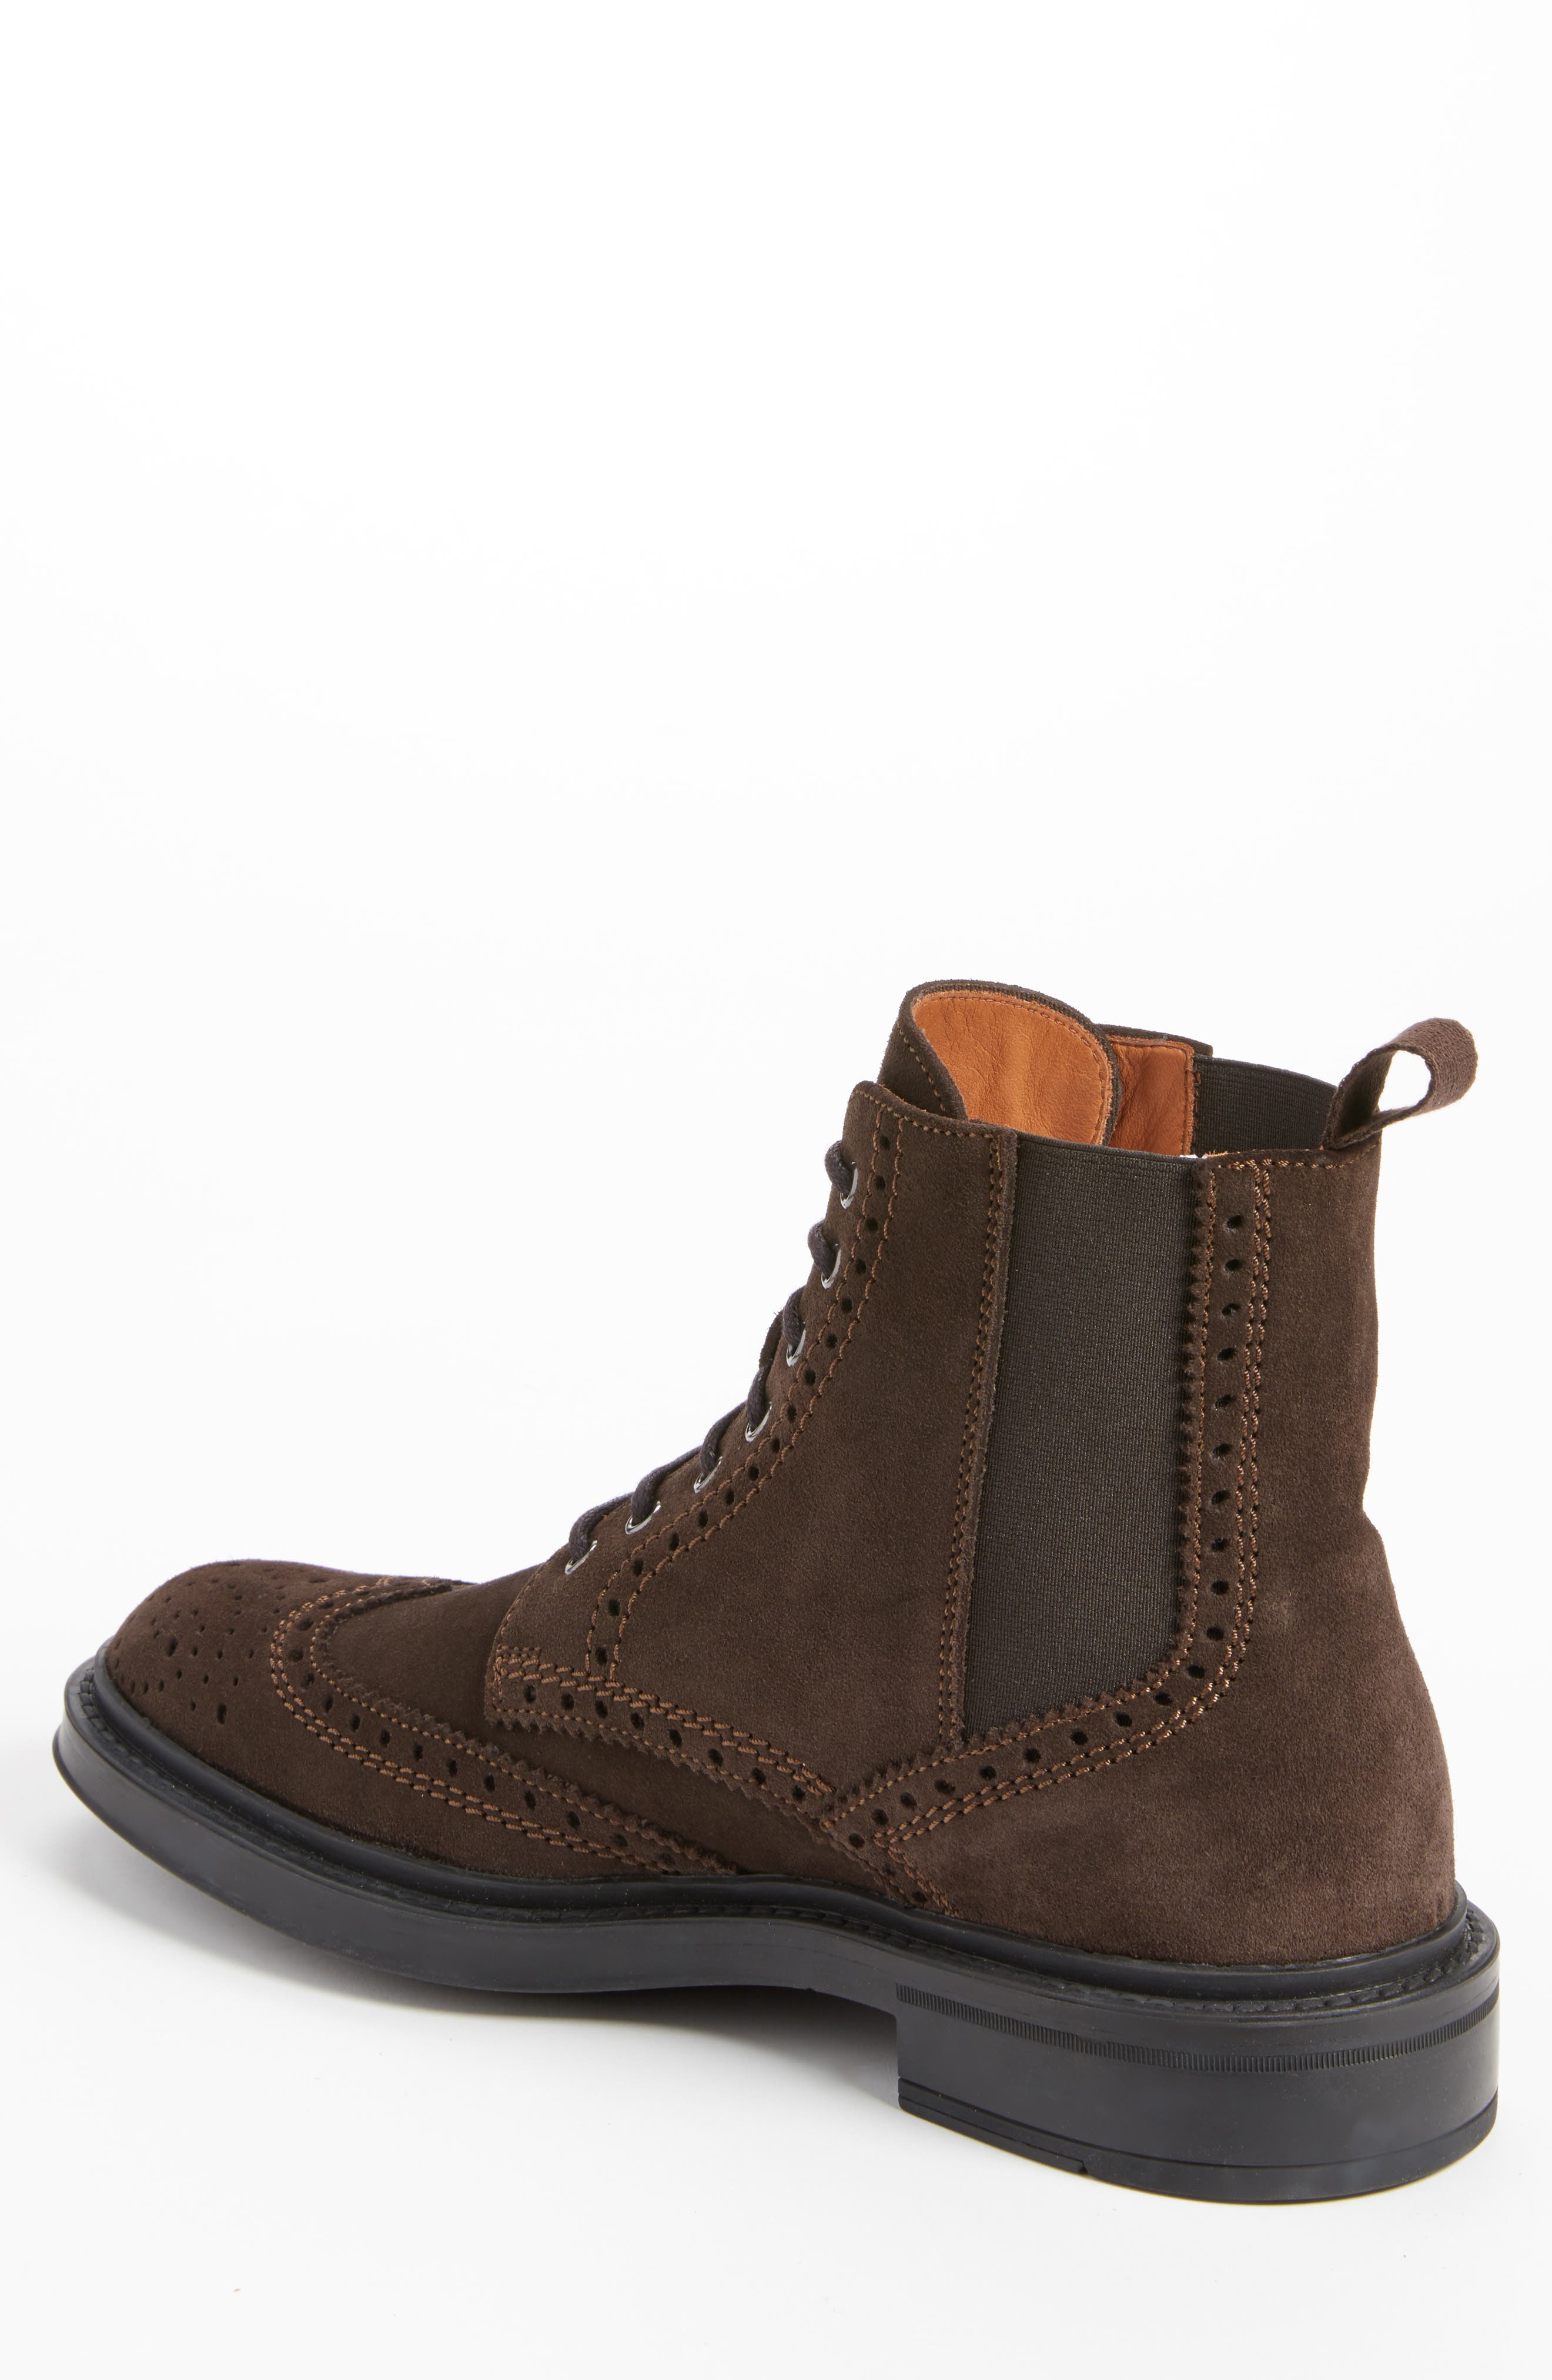 Lawrence Wingtip Boot,                             Alternate thumbnail 2, color,                             201